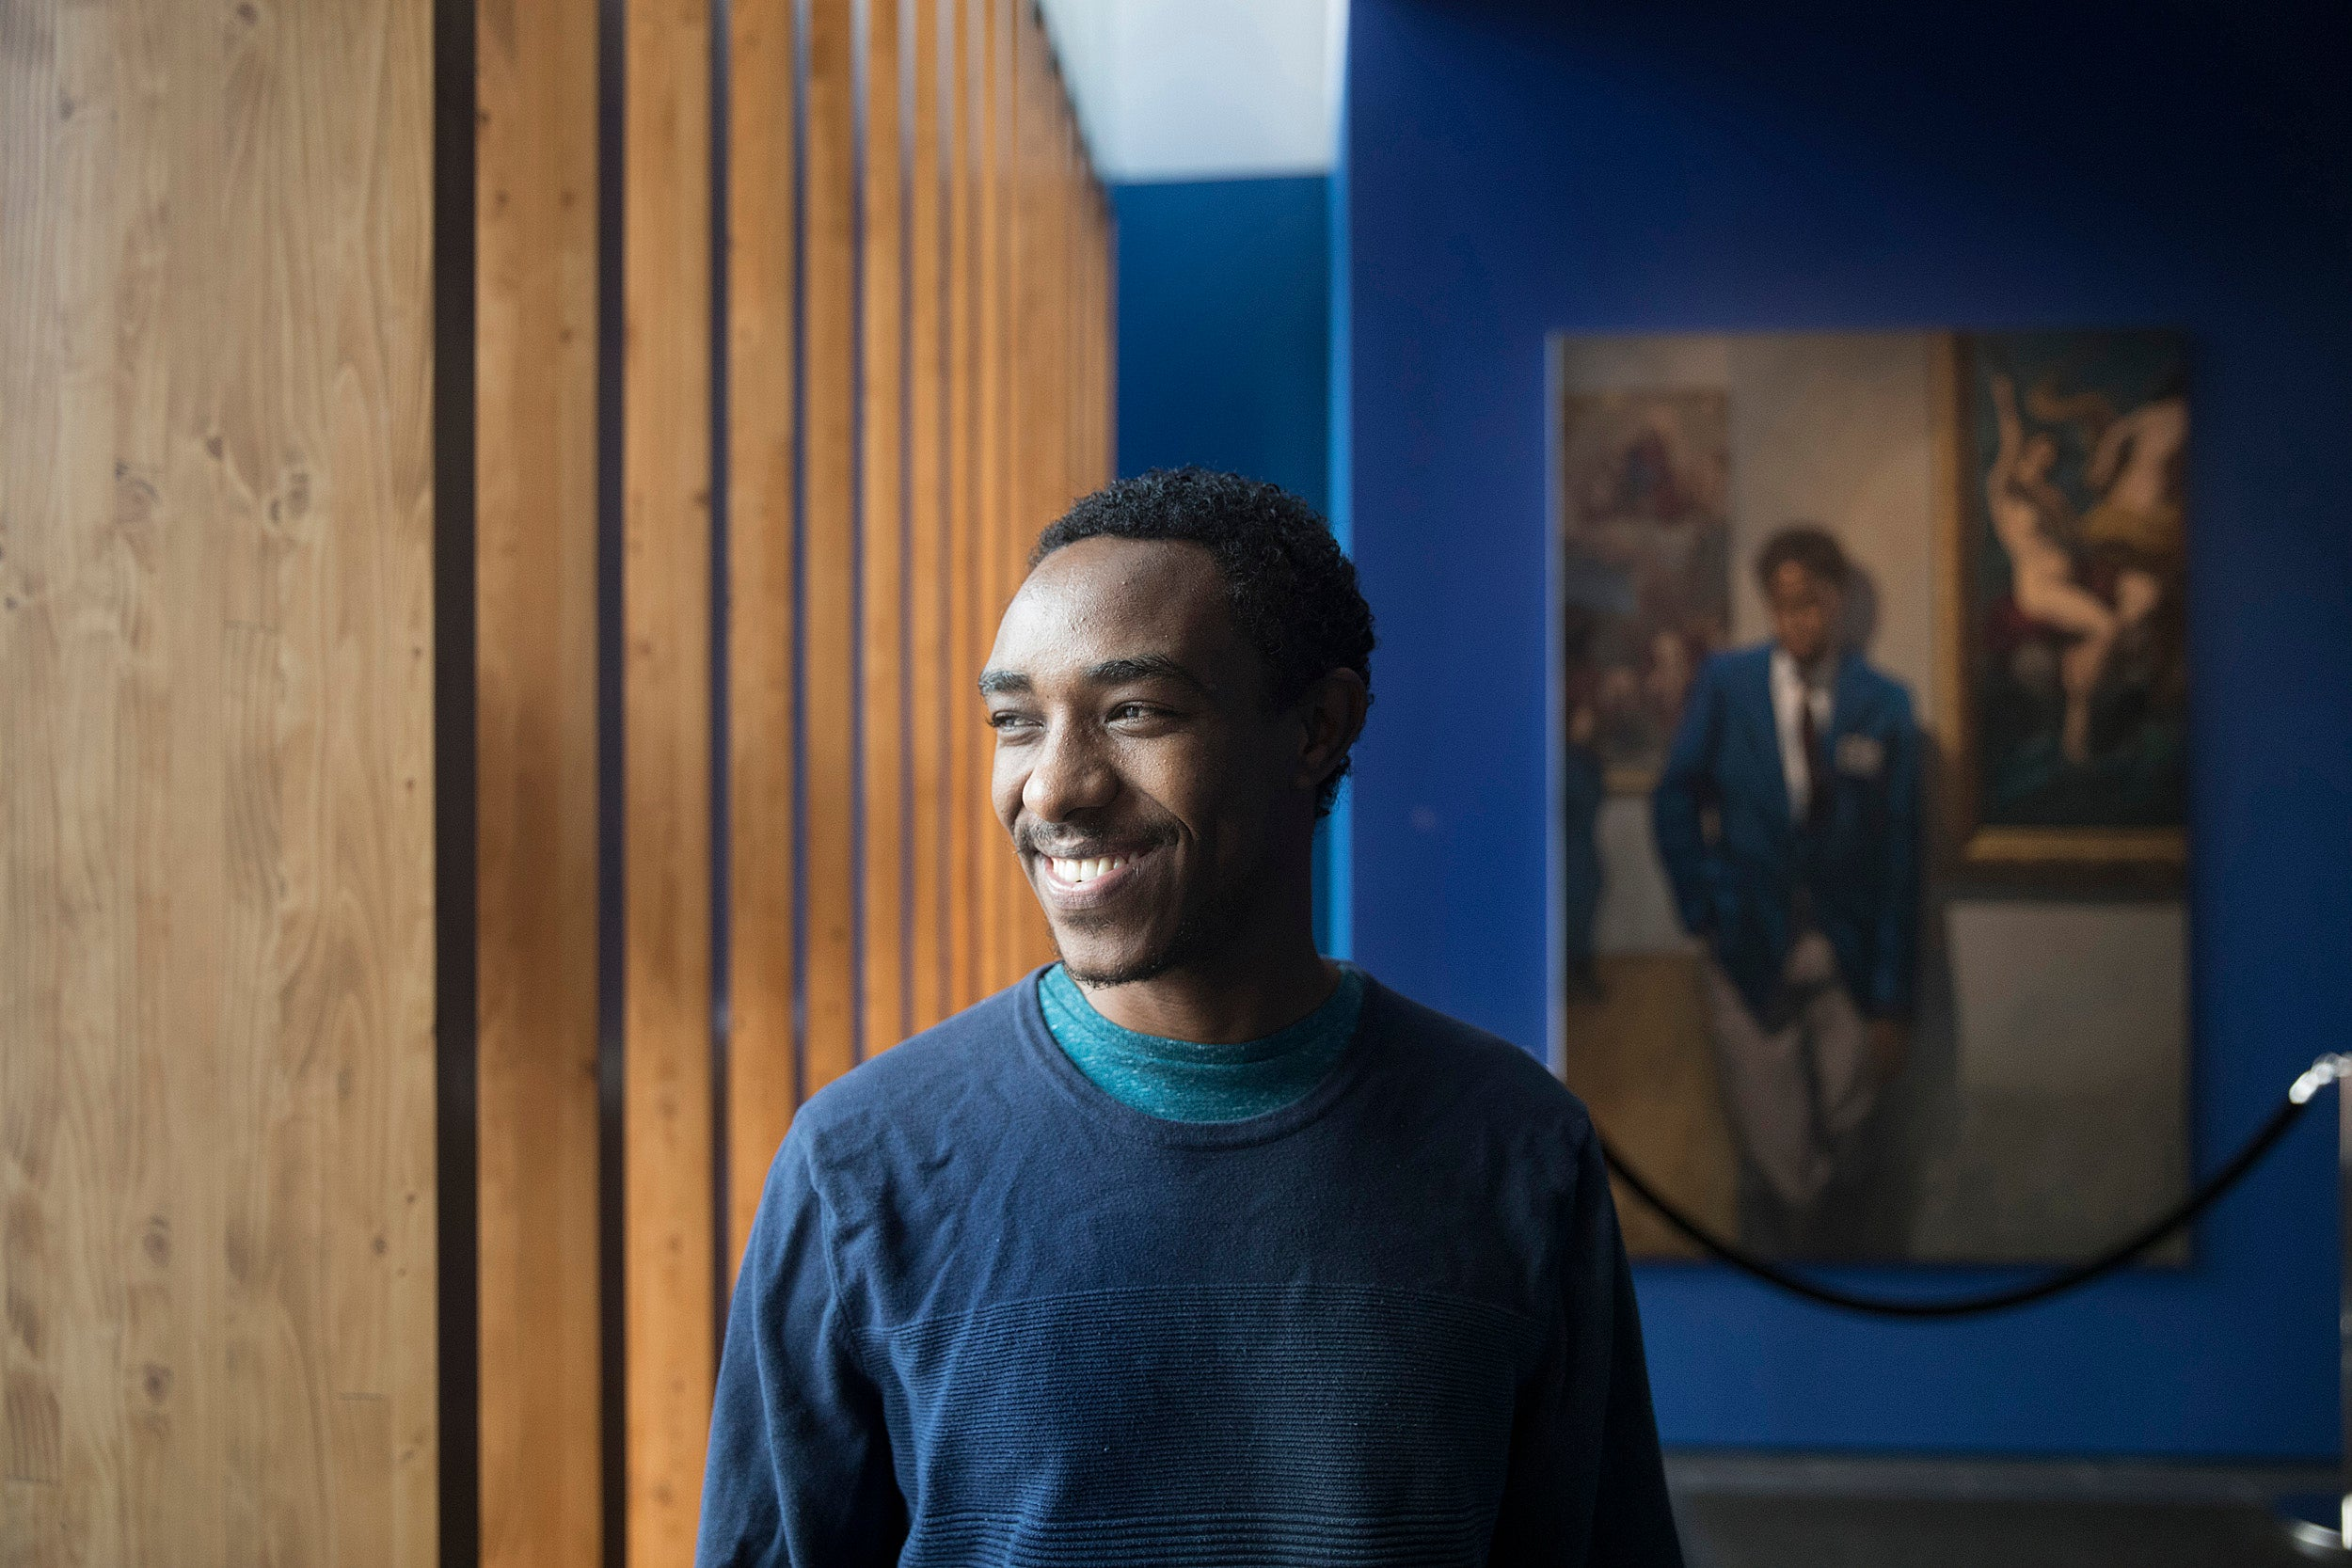 Zelalem Kibret, a scholar at risk this year at Harvard, was arrested and jailed by the Ethiopian government in 2014 for his dissident activity as a part of the Zone 9 blogging collective.